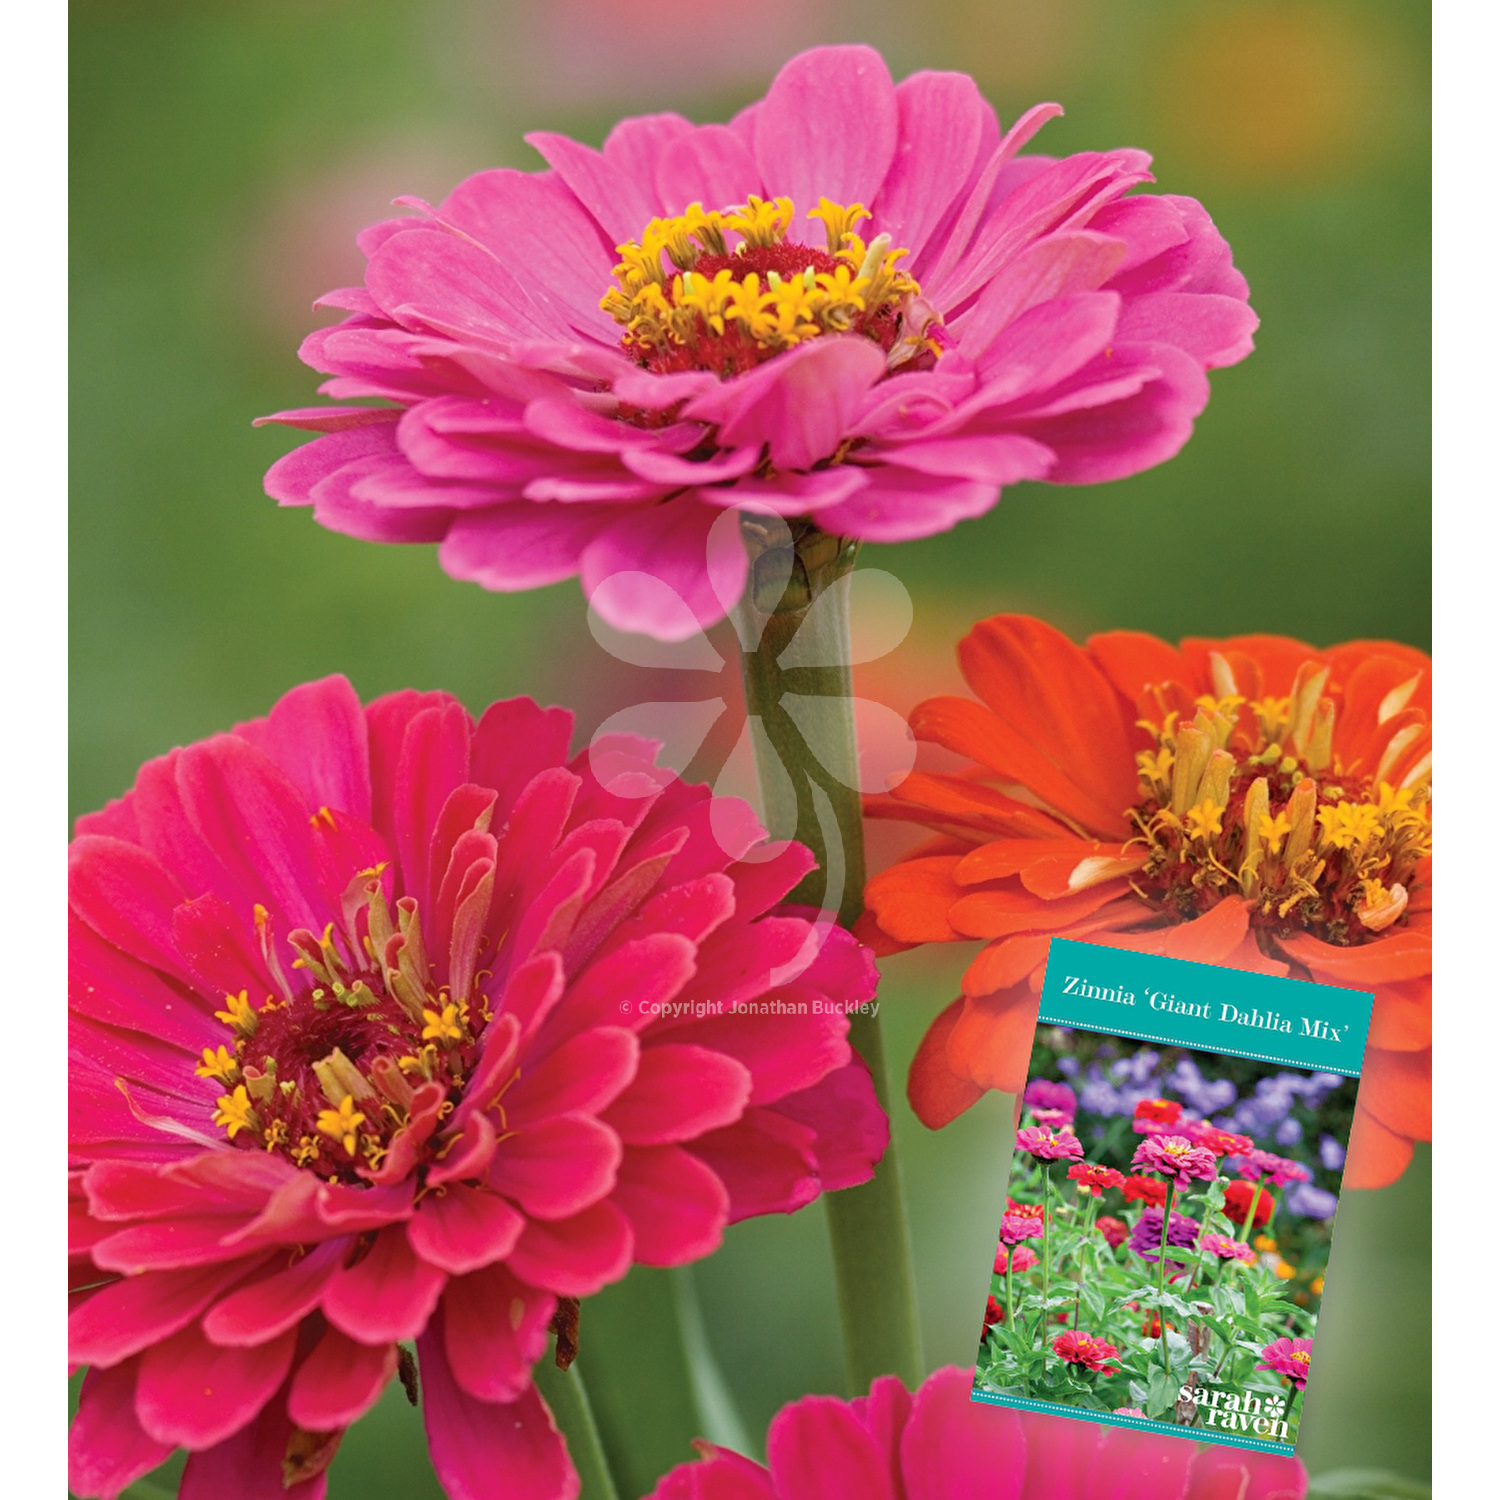 Zinnia Giant Dahlia Mix